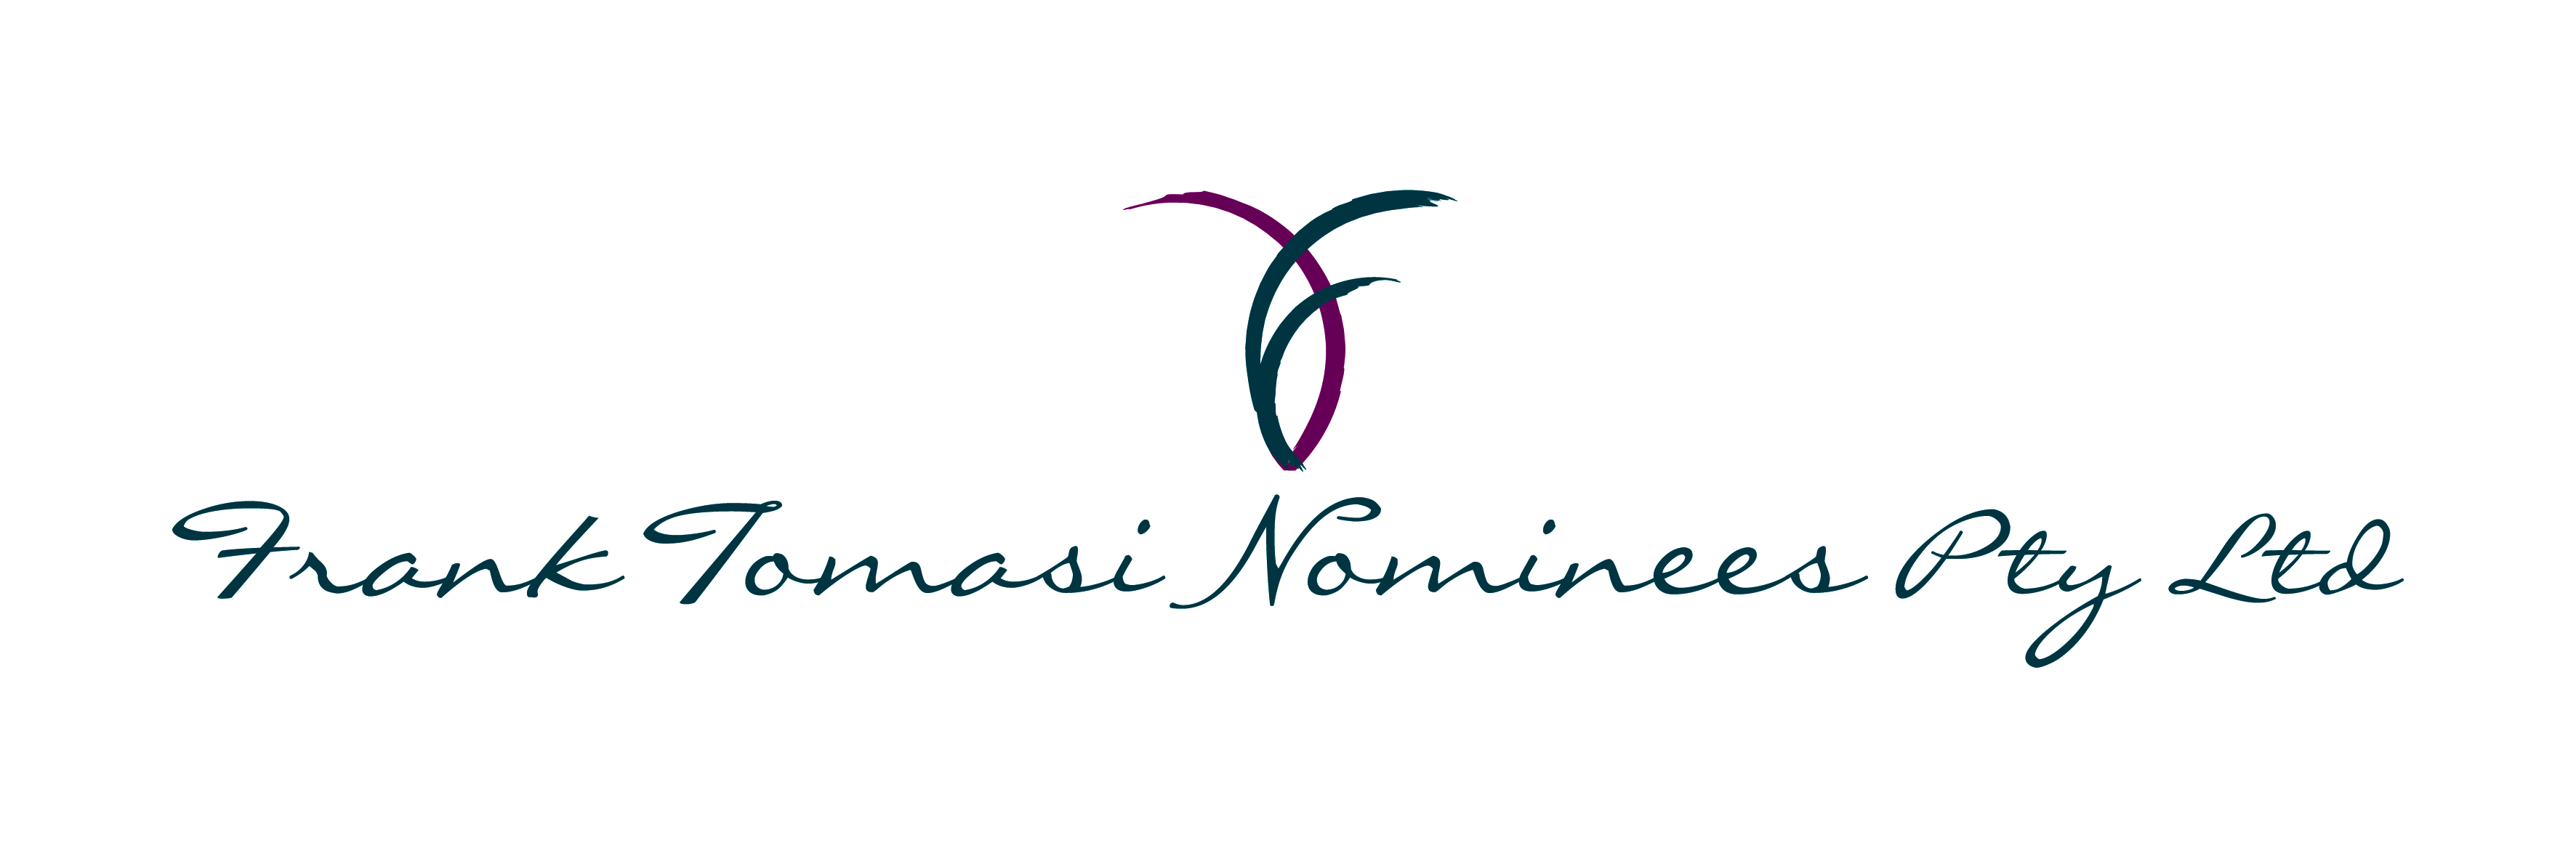 FRANK TOMASI NOMINEES PTY LTD